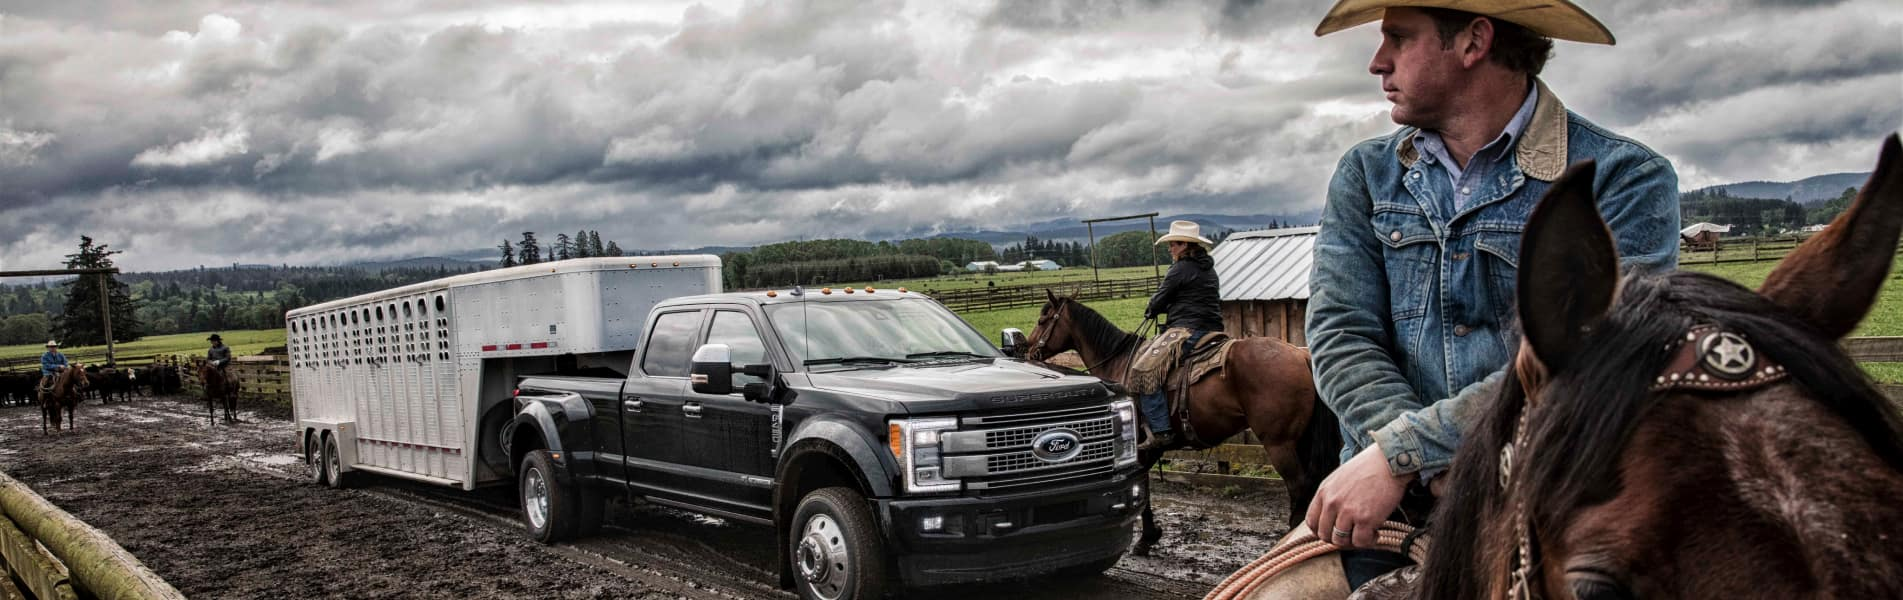 The 2019 Ford F-450 available at Sutton Ford Commercial Truck Center, near Frankfort, IL